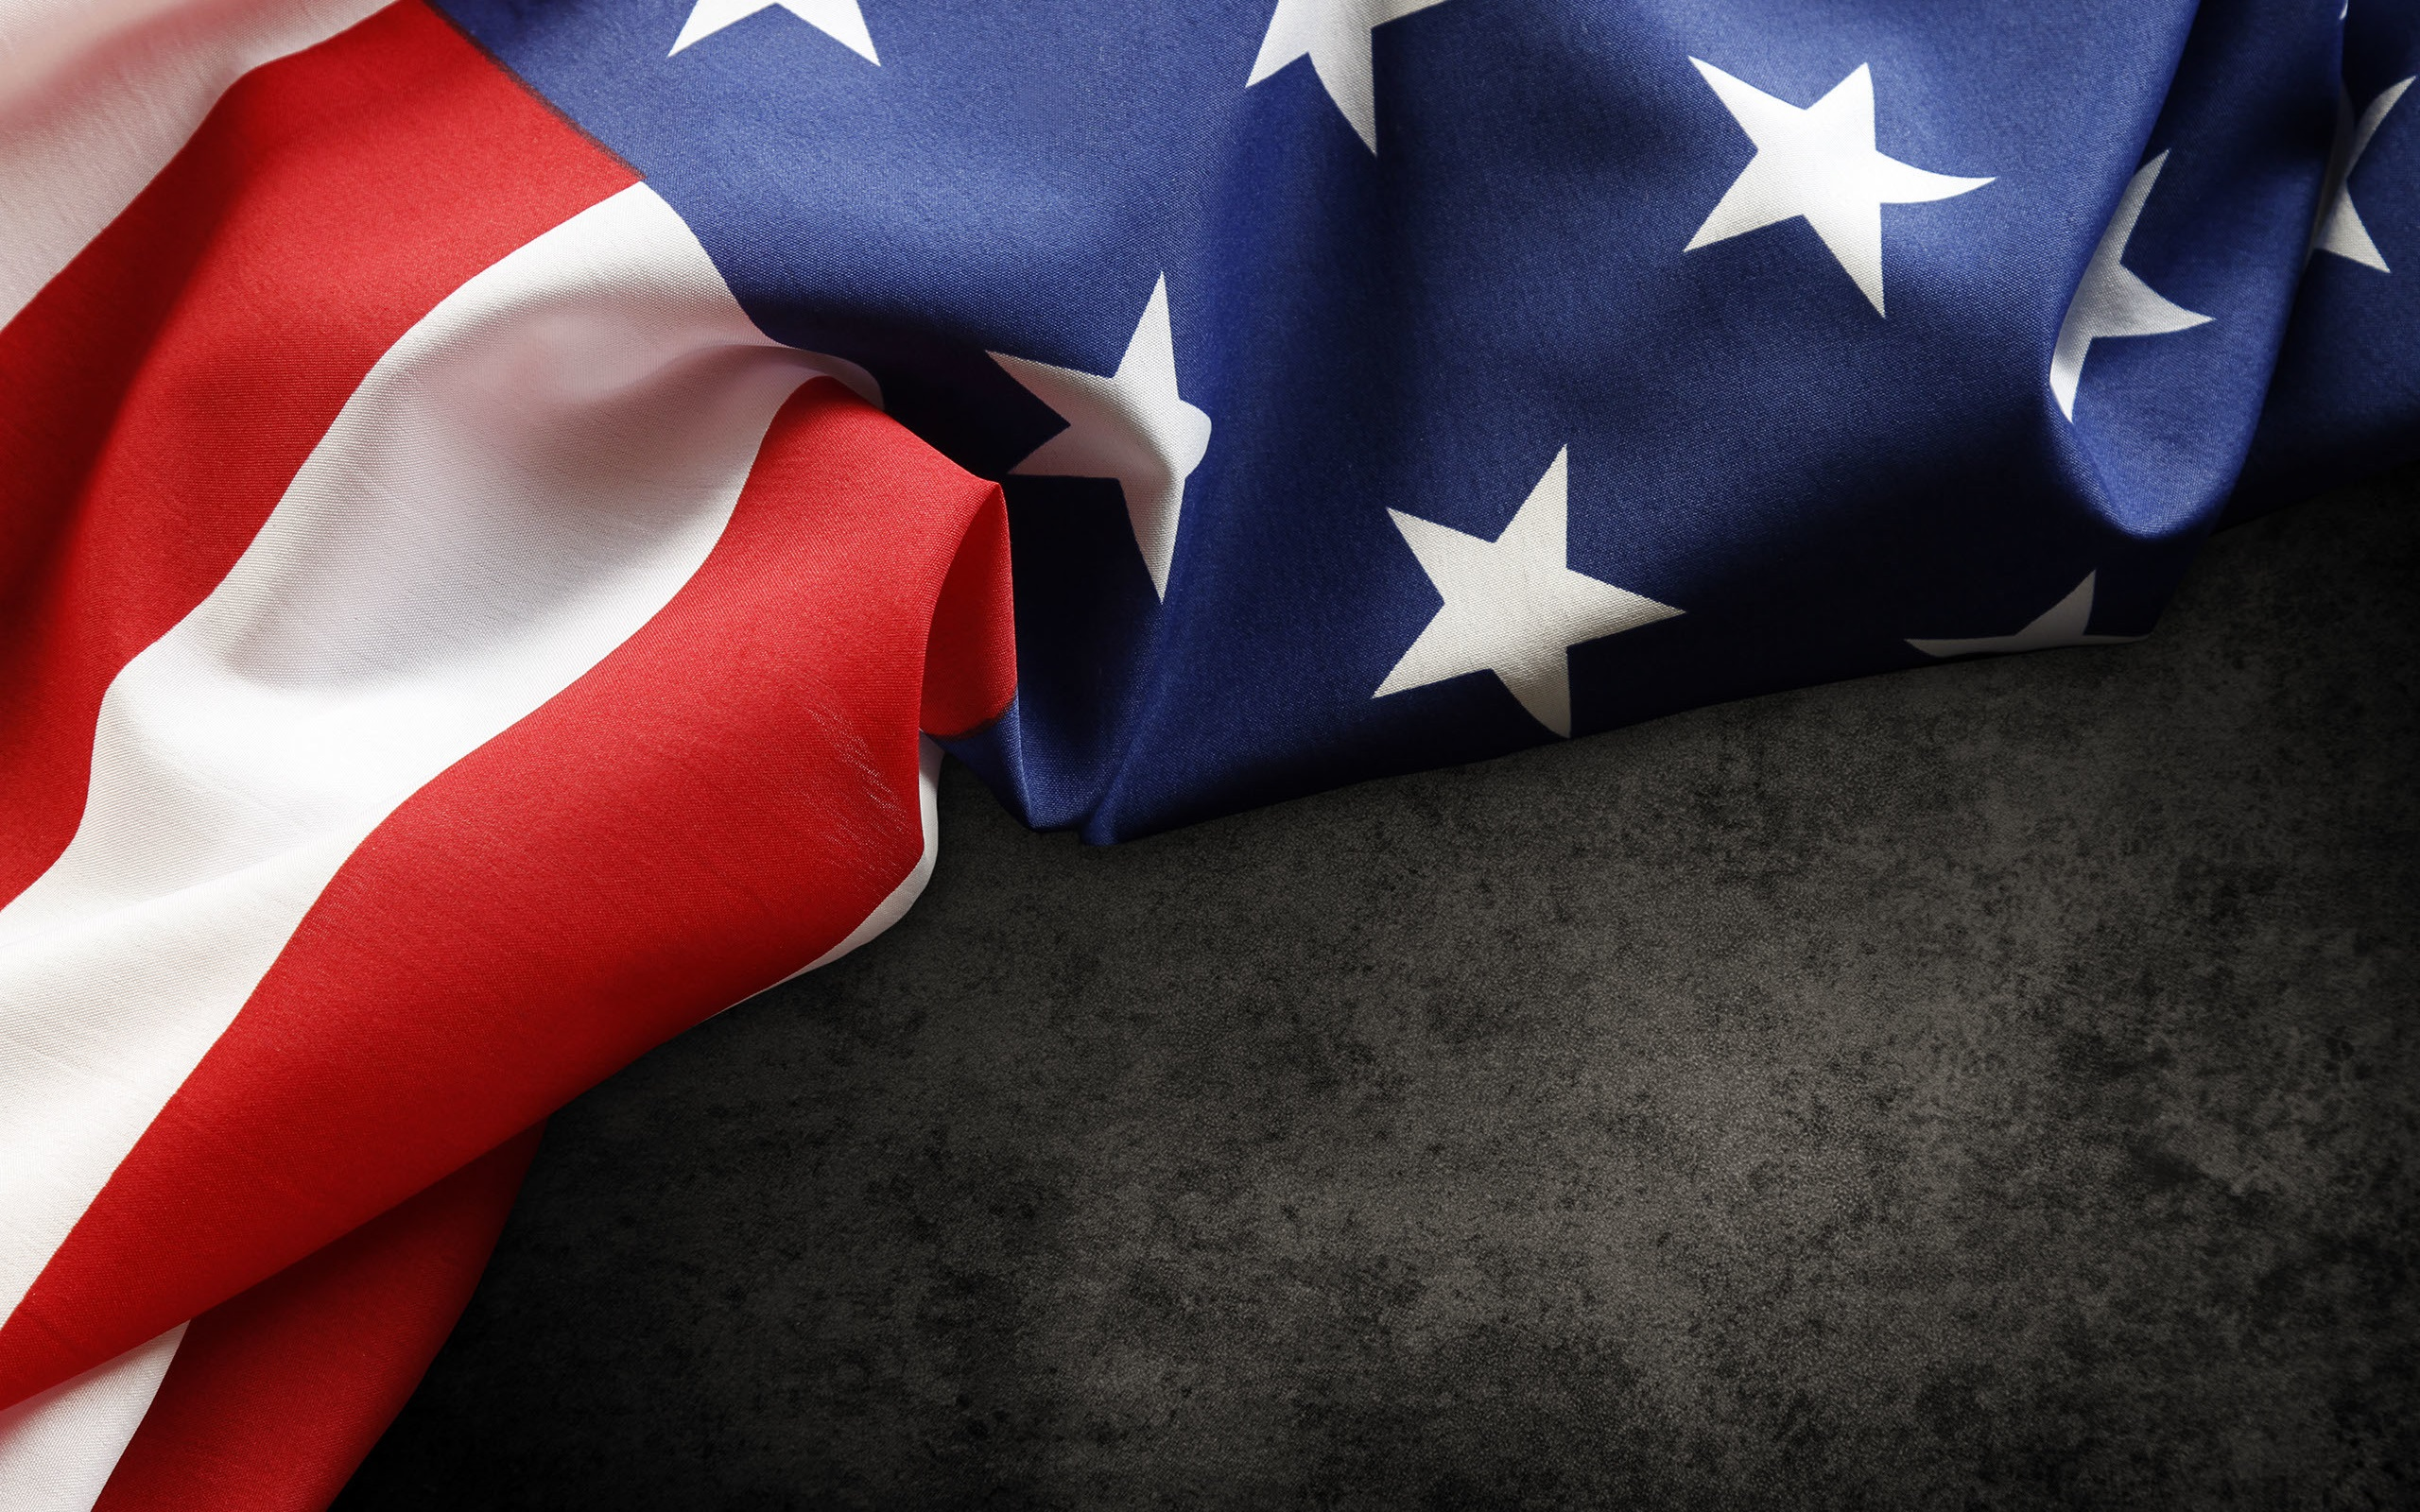 Wallpaper Usa Flag Fabric 2560x1600 Hd Picture Image